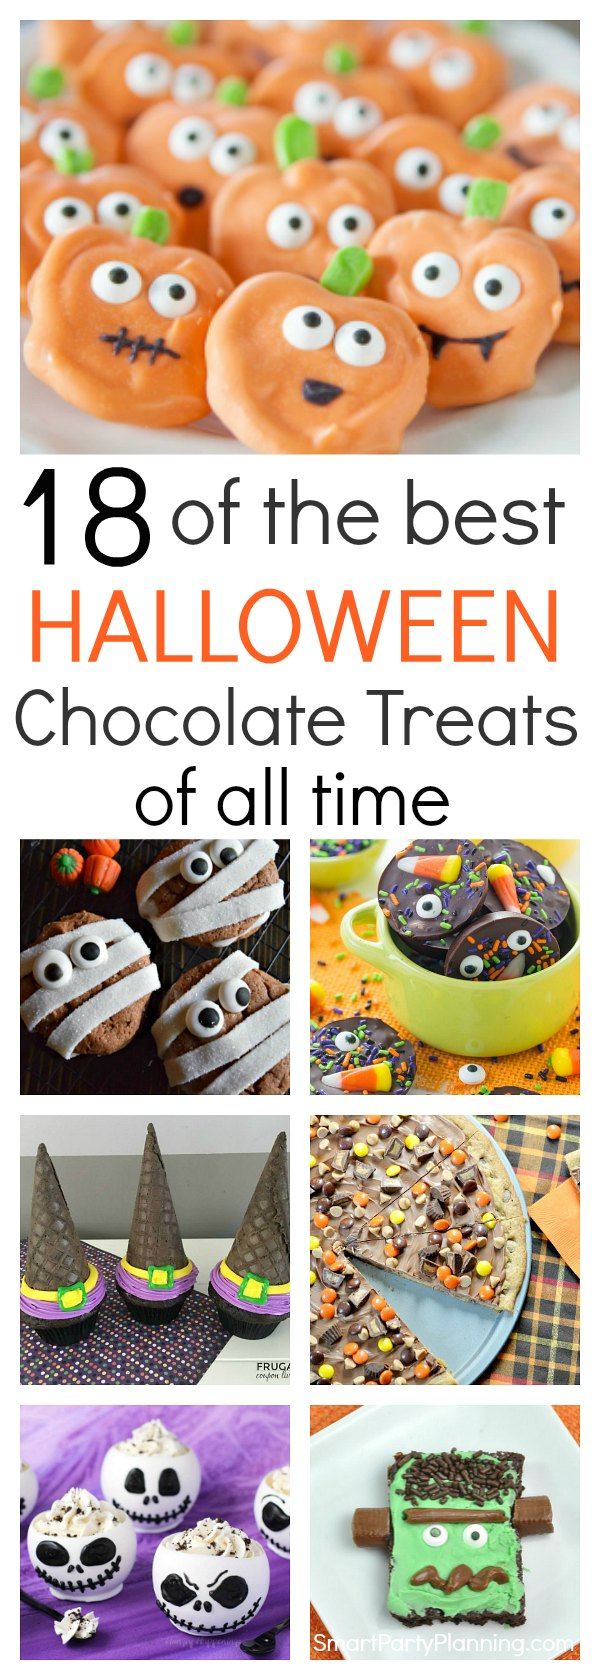 18 of the easiest chocolate treats you will find for a Halloween celebration.  With a mix of recipes, including cookies, cupcakes, brownies, and bite size treats, this selection will be enjoyed by both kids and adults. They are quick to make, they all look amazing and all taste delicious. It is the ultimate Halloween chocolate treat selection.